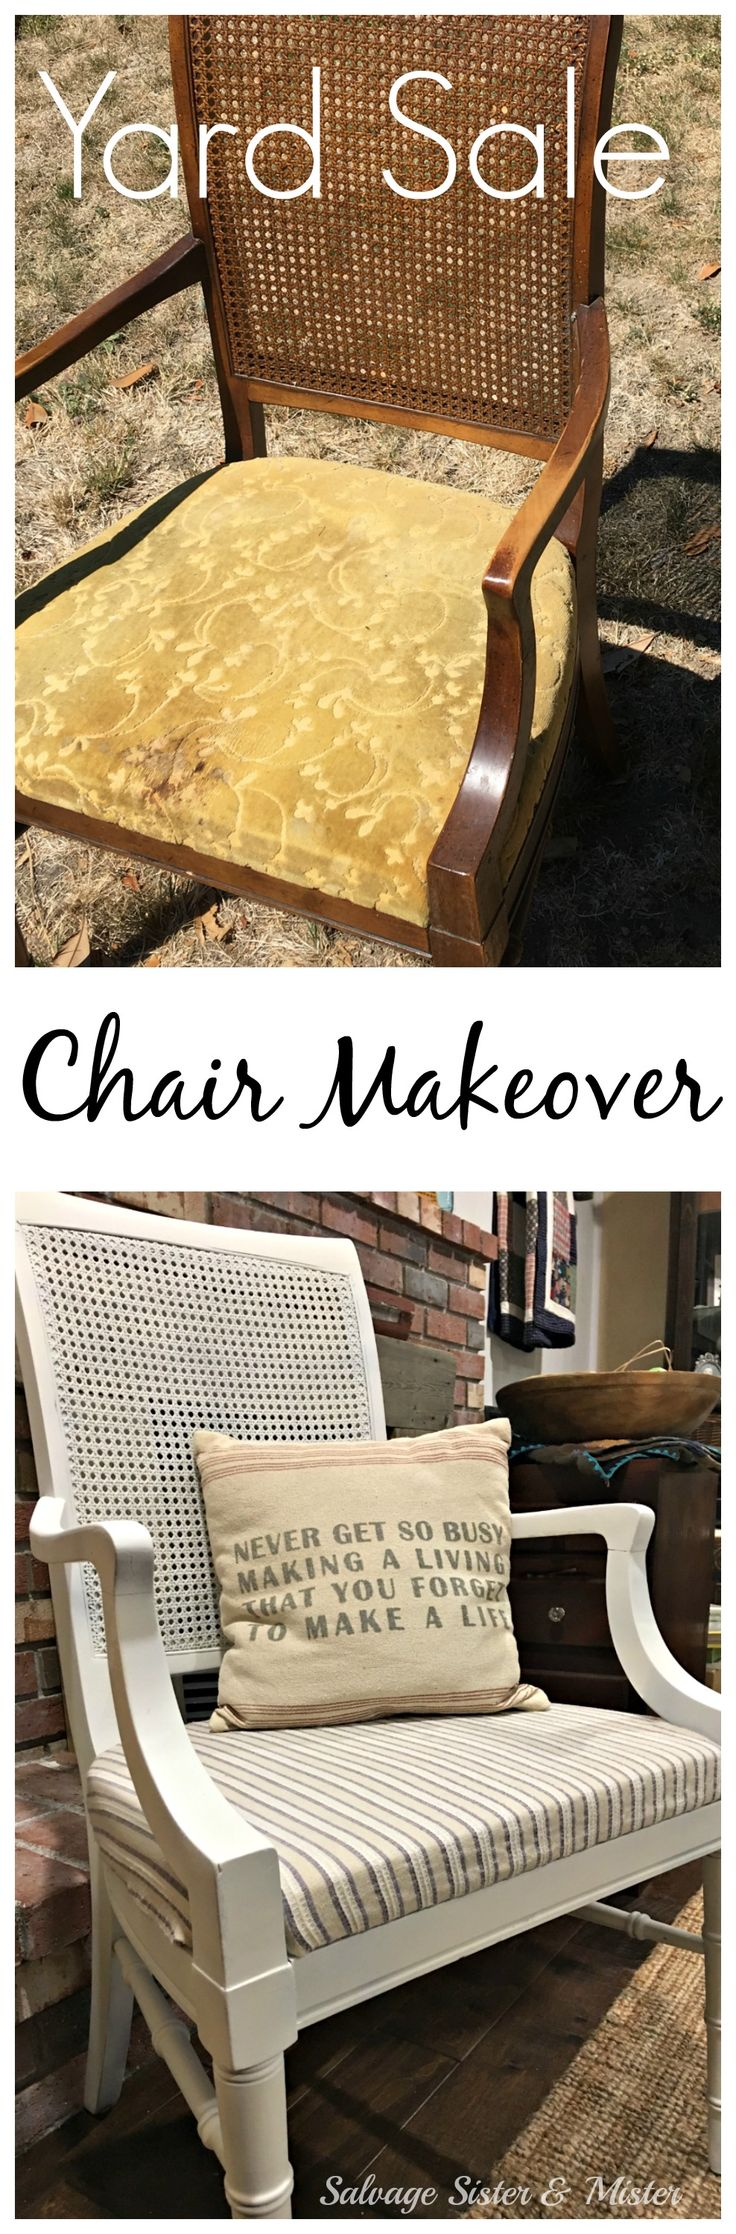 This yard sale chair was a bargain price but needed some work. It was the perfect price to DIY and reupholster for the first time. Using a little spray chalk paint the chair is now perfect for a modern eclectiv farmhouse office chair. Most items were items we already had on hand, use what you got. Inexpensive and fairly simple home project to tackle.